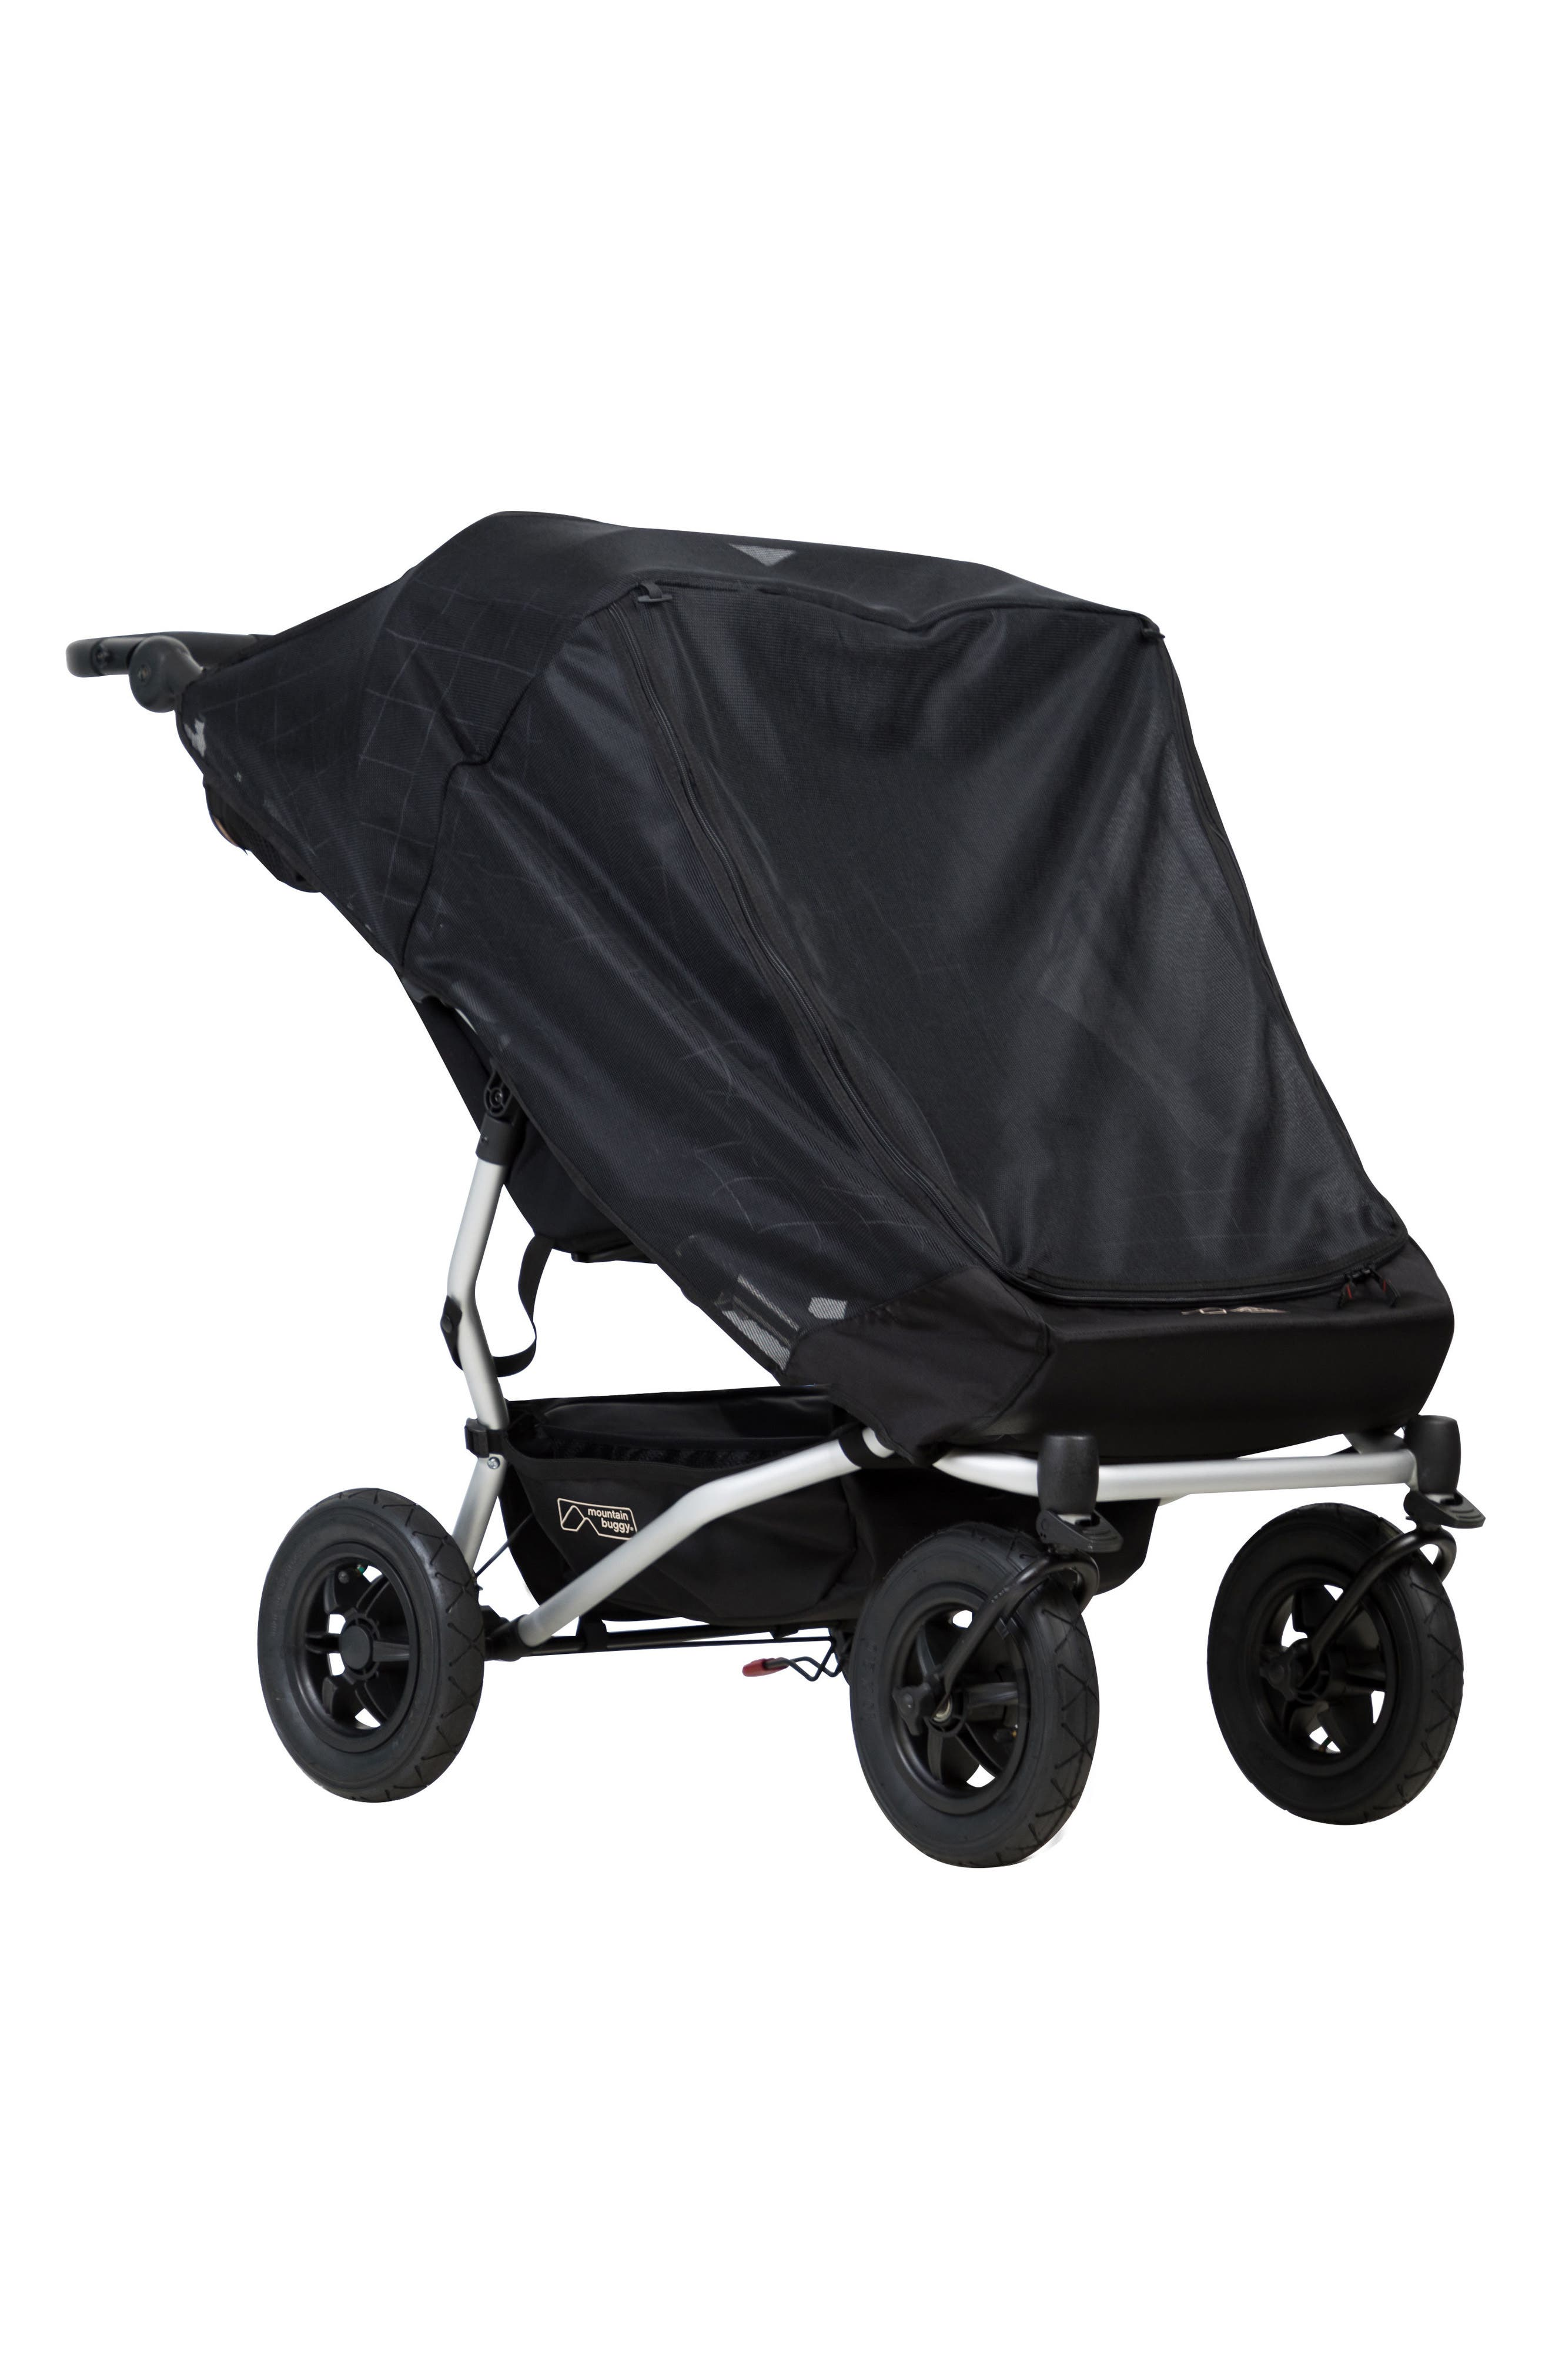 Alternate Image 1 Selected - mountain buggy 2017 Duet Stroller Double Storm Cover